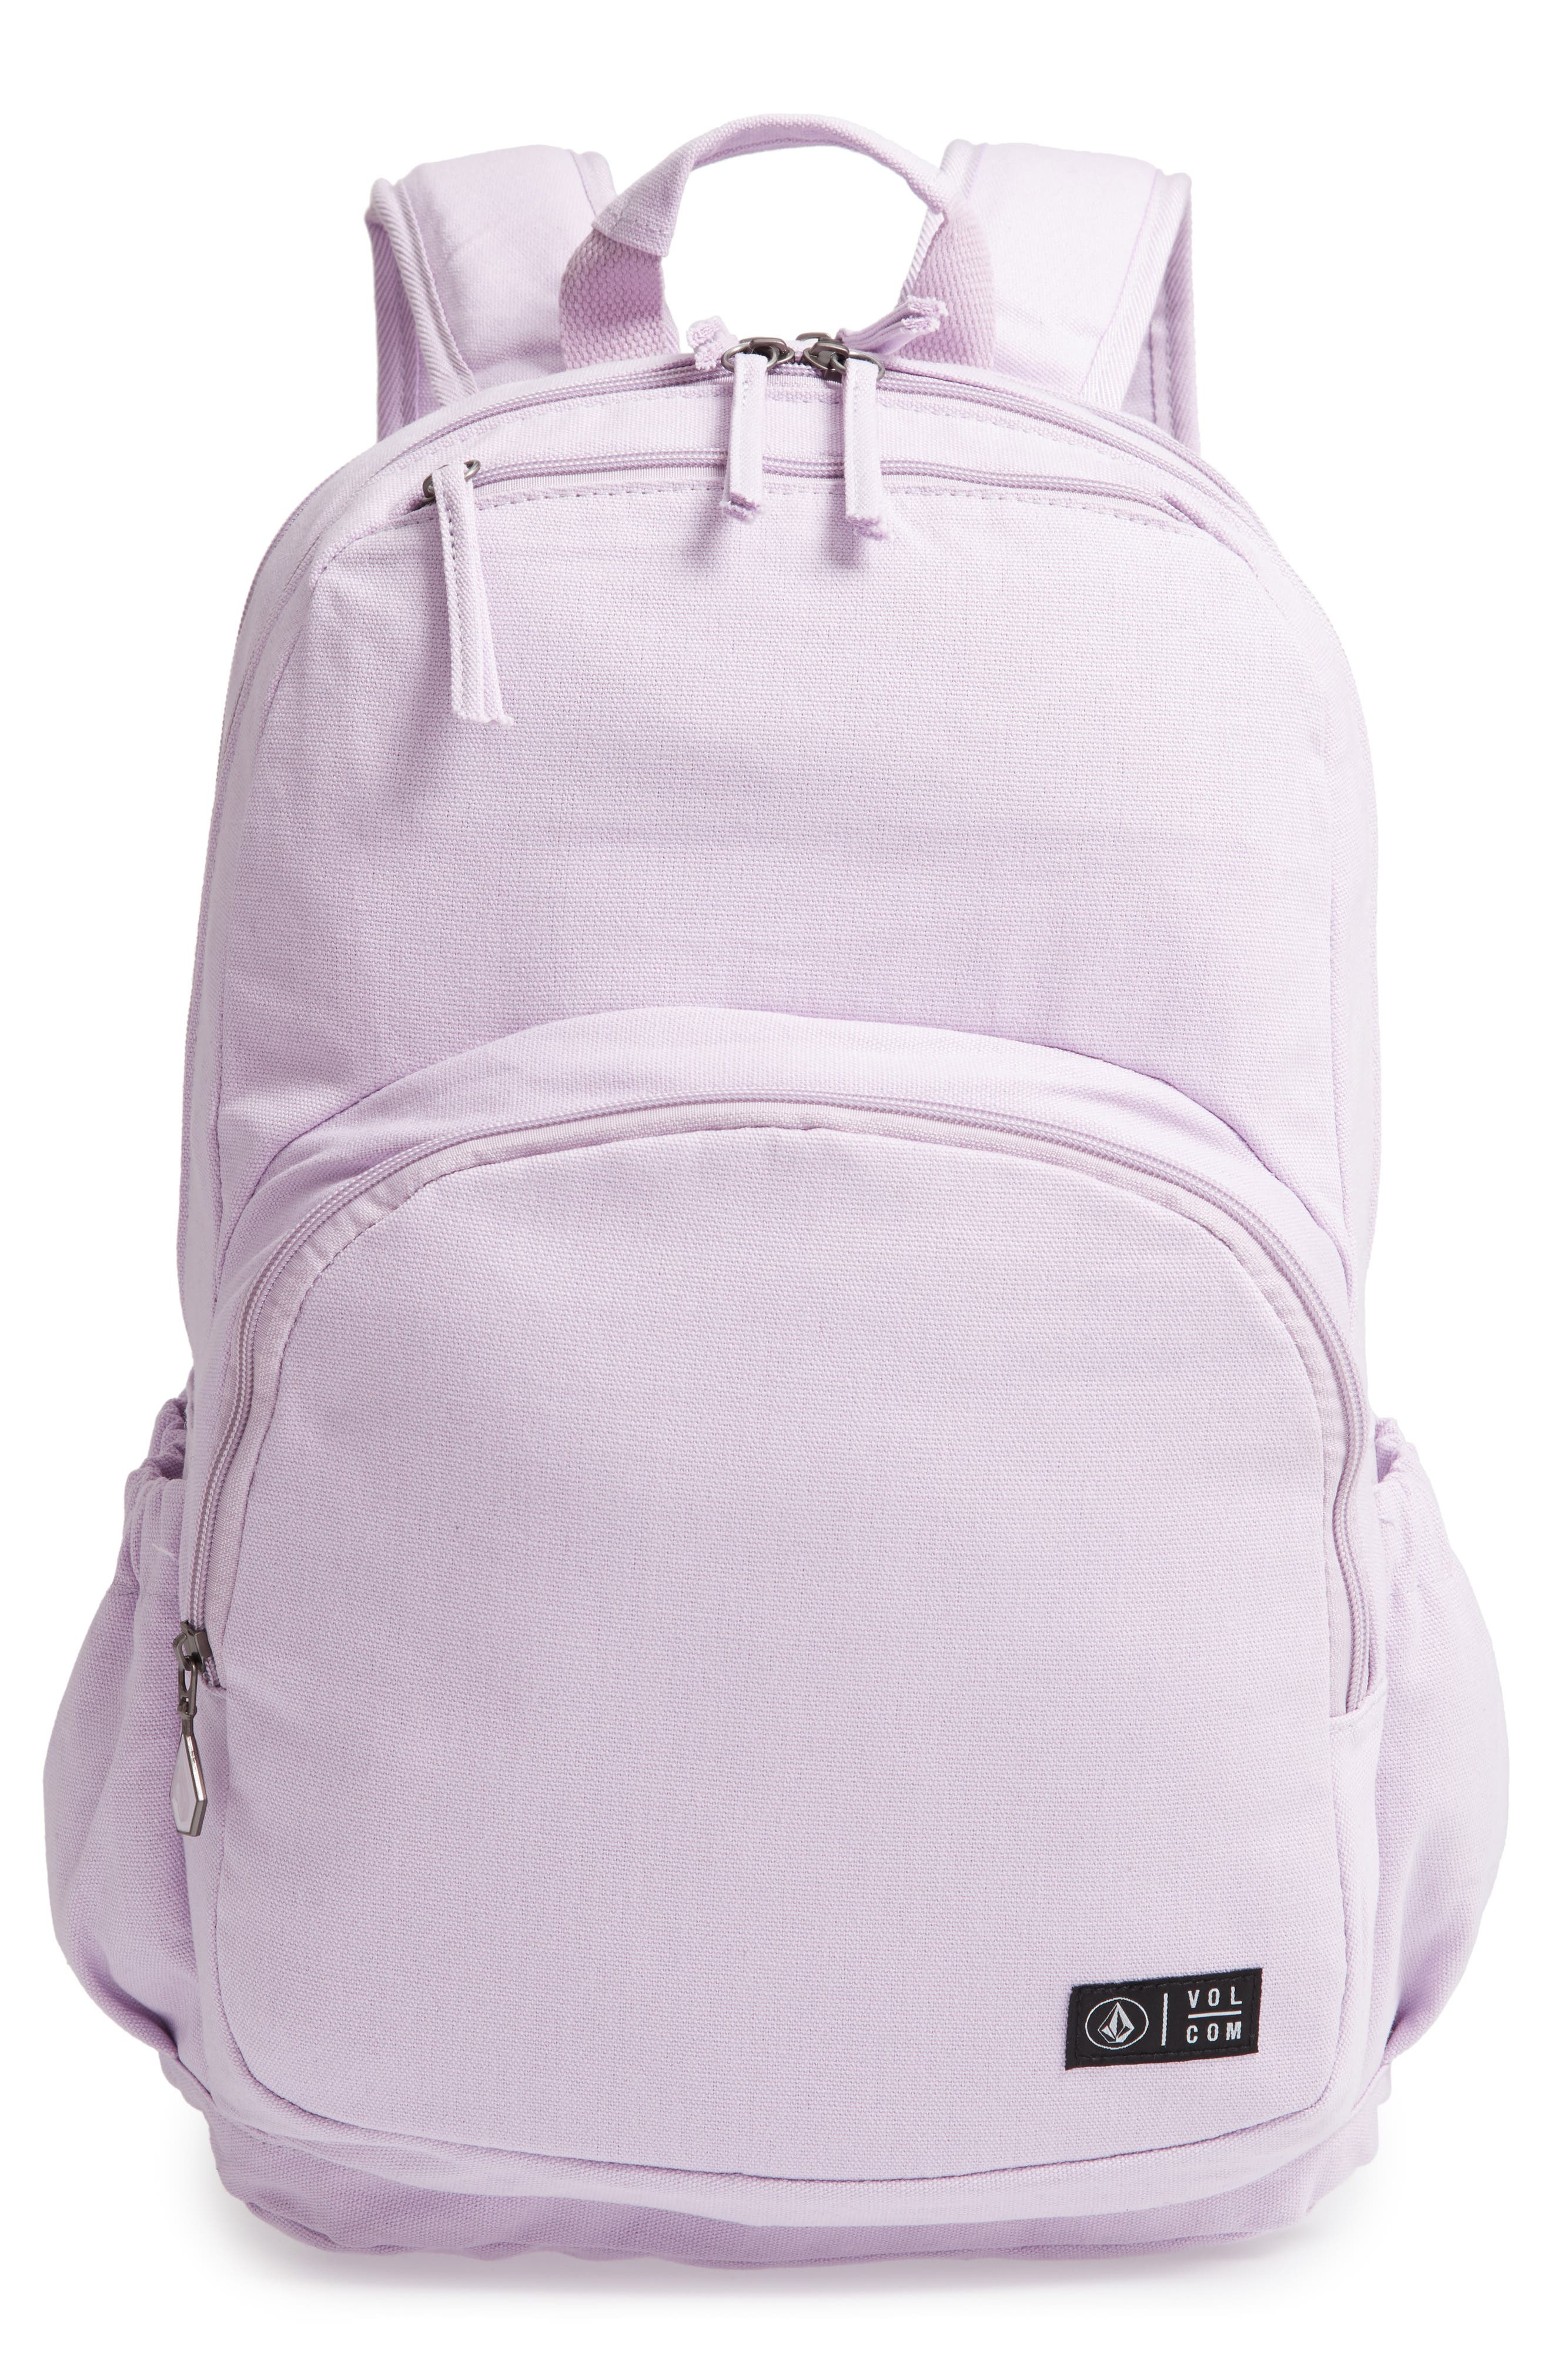 Field Trip Canvas Backpack,                             Main thumbnail 1, color,                             500